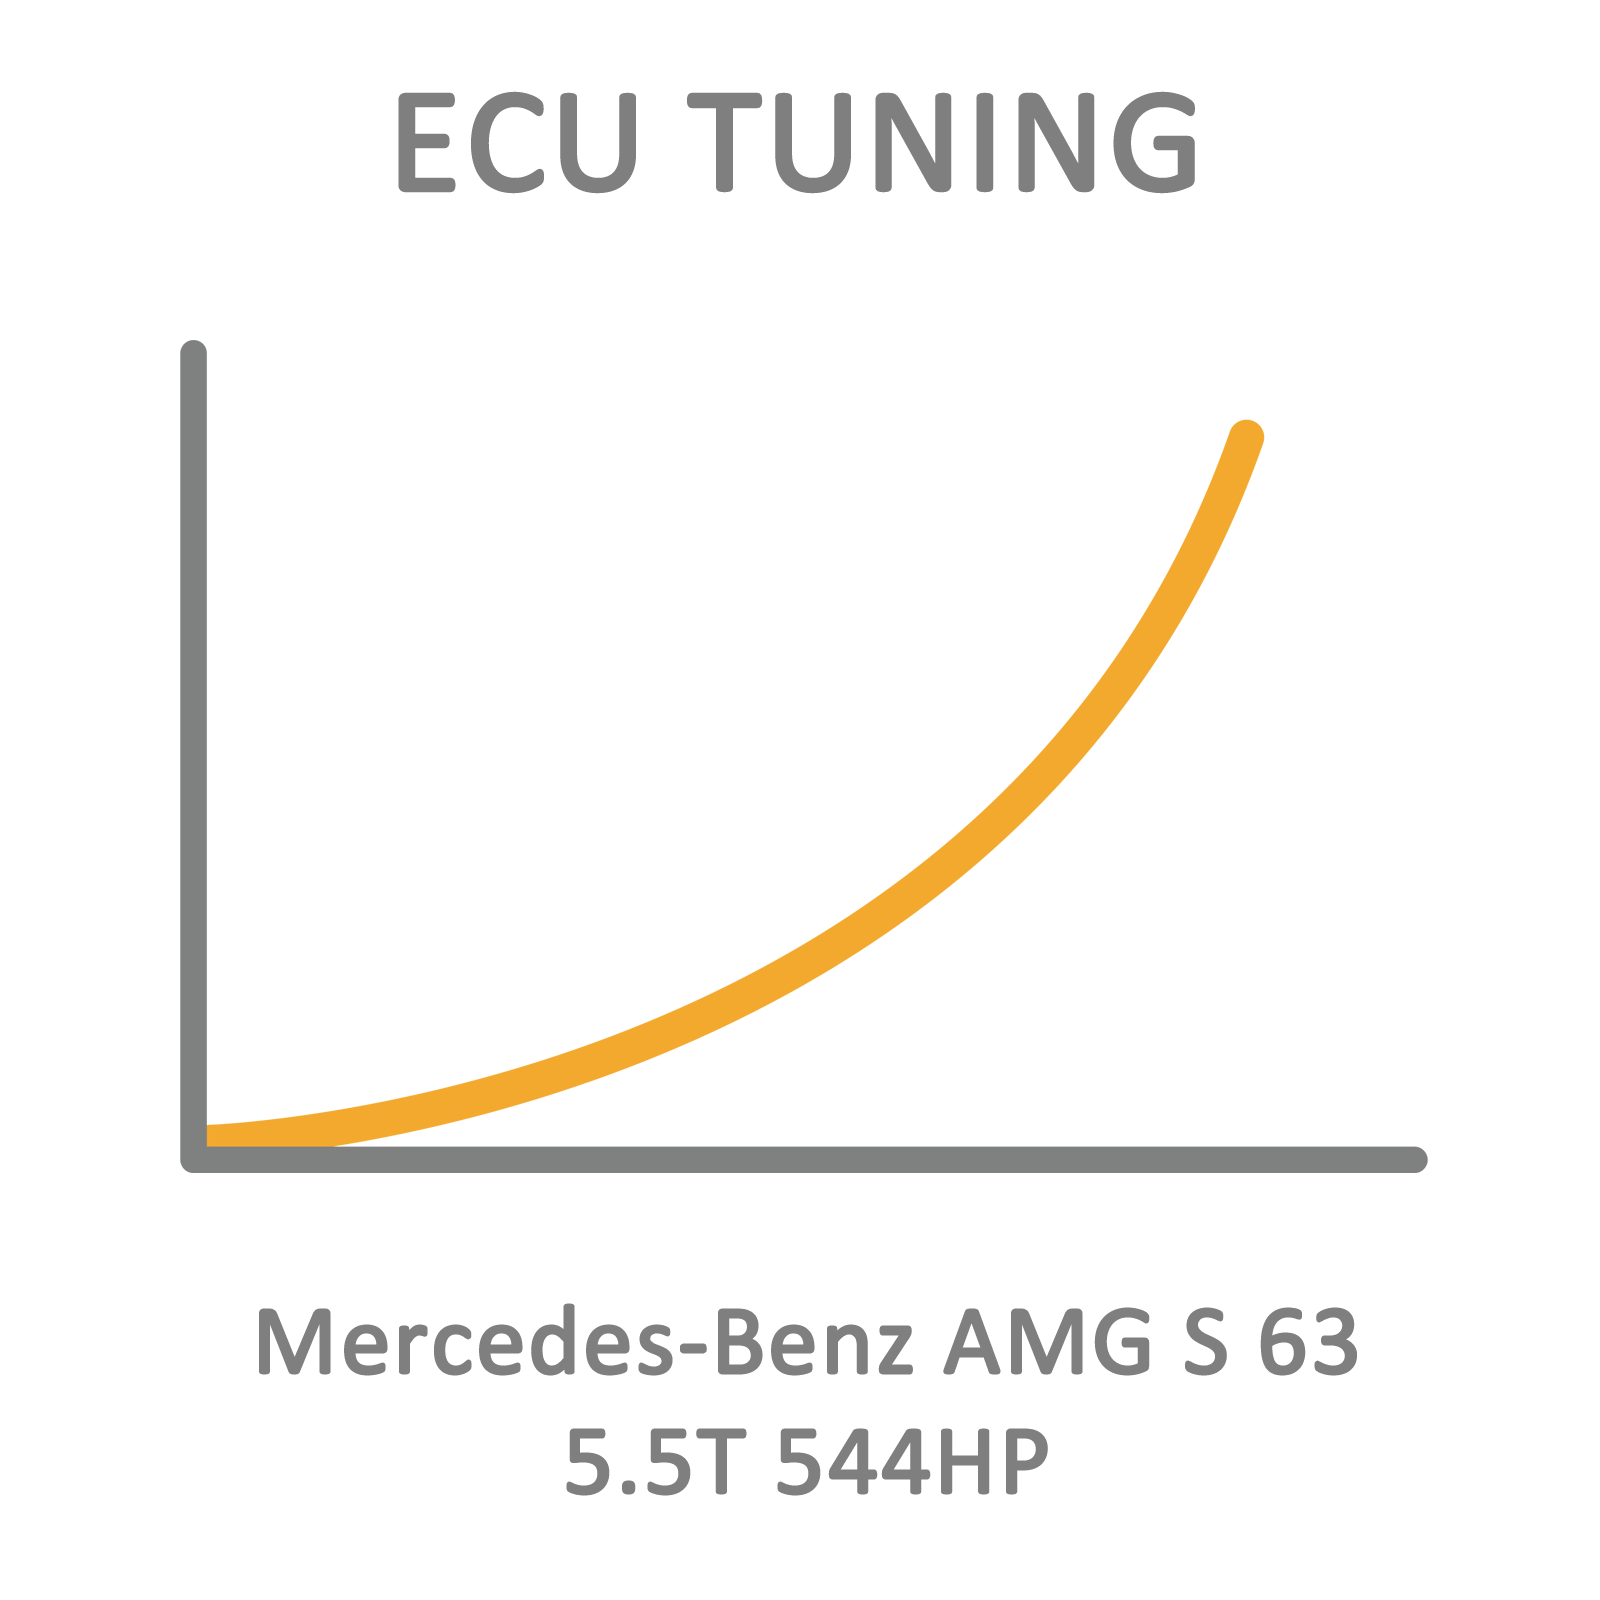 Mercedes-Benz AMG S 63 5.5T 544HP ECU Tuning Remapping